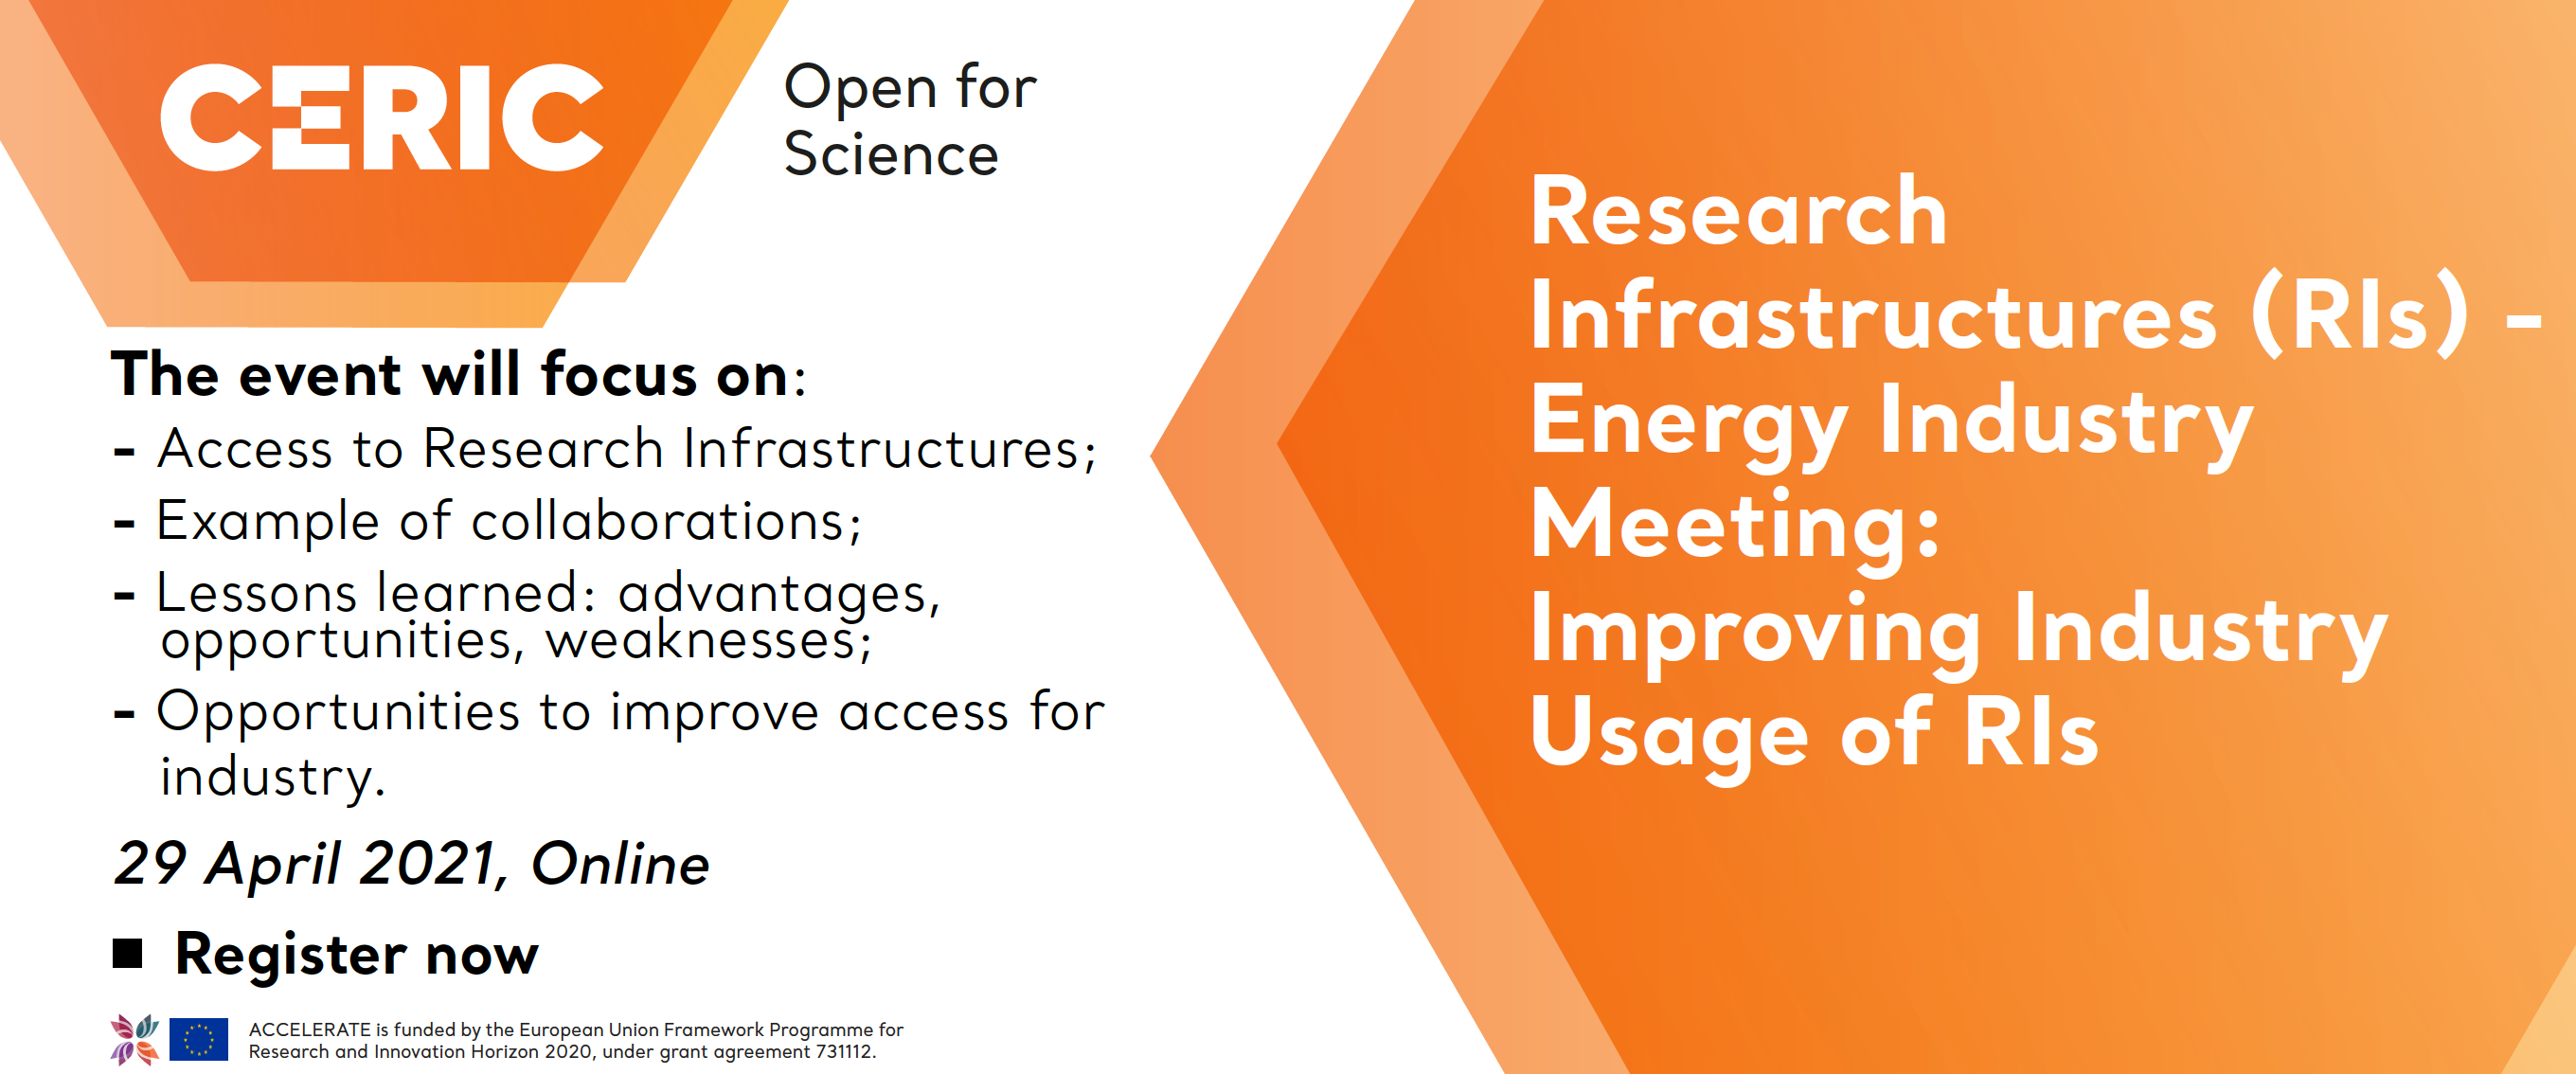 Research Infrastructures (RIs) - Energy Industry Meeting: Improving Industry Usage of RIs @ Onlie